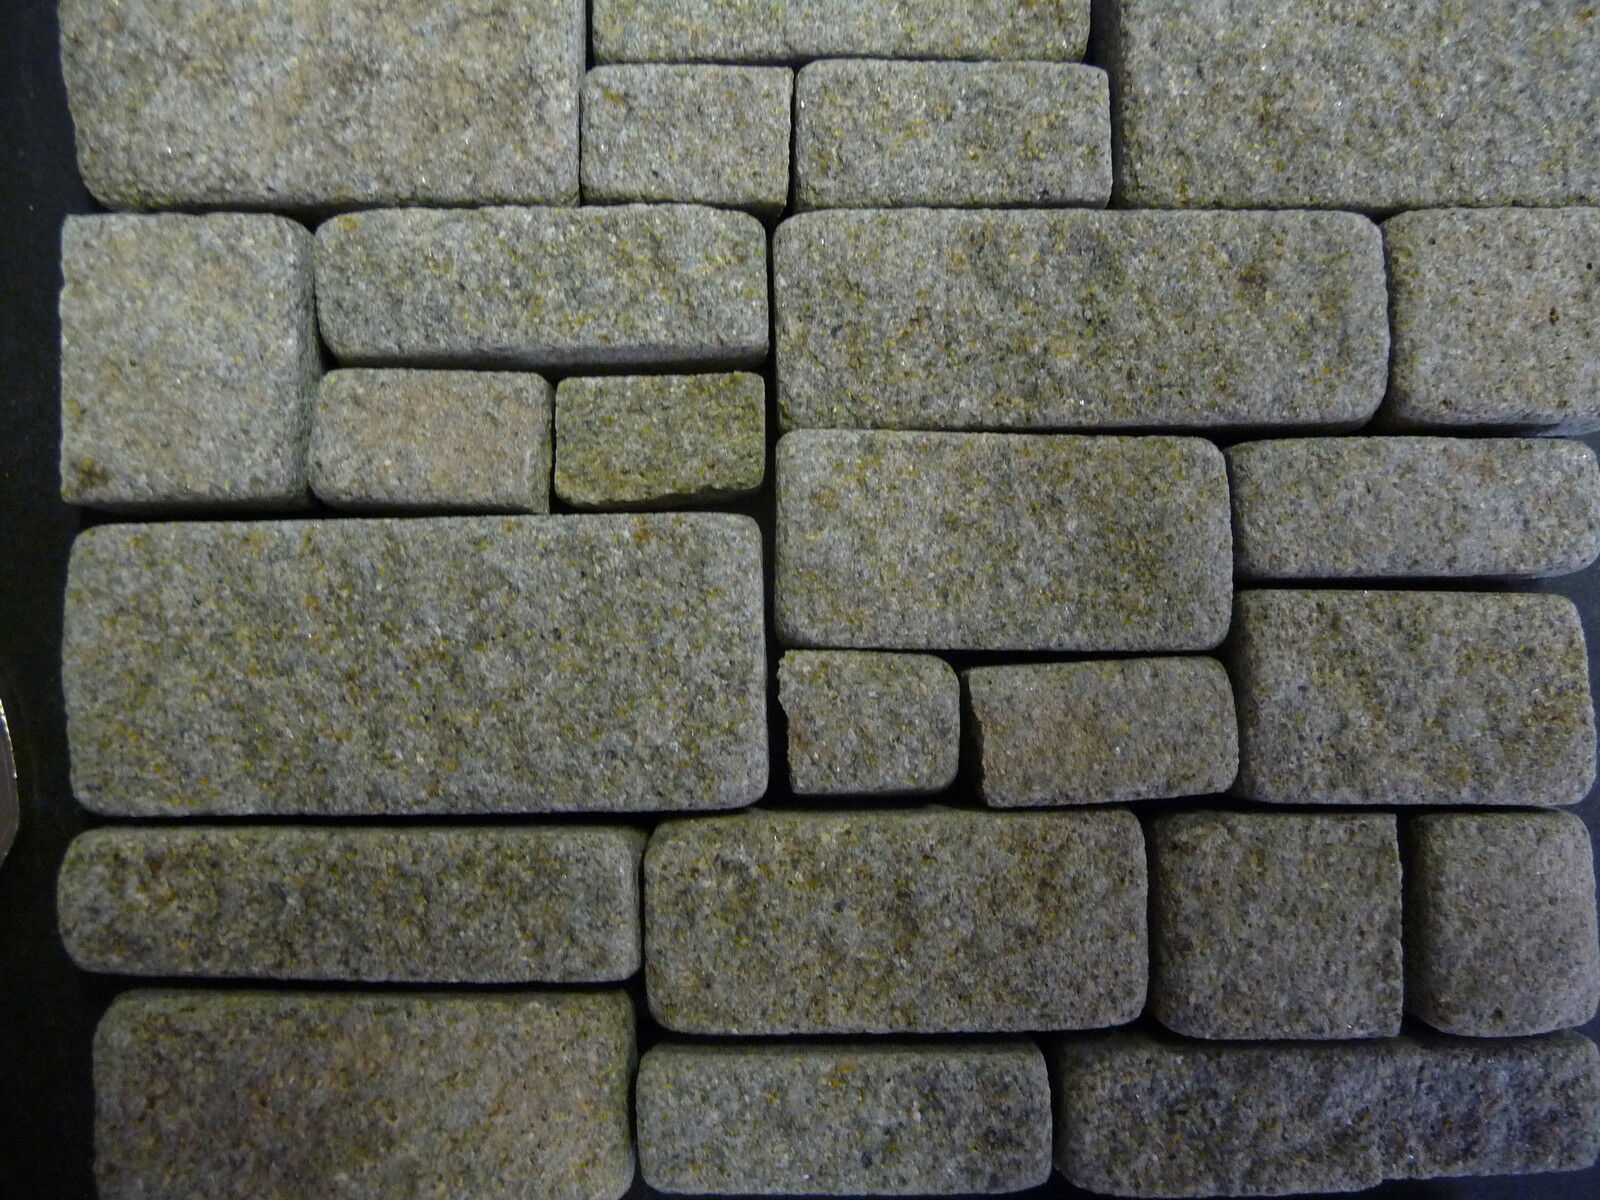 100 sq ins 1 12th Scale REAL grau STONE Miniature Cottage Stone Building Blocks